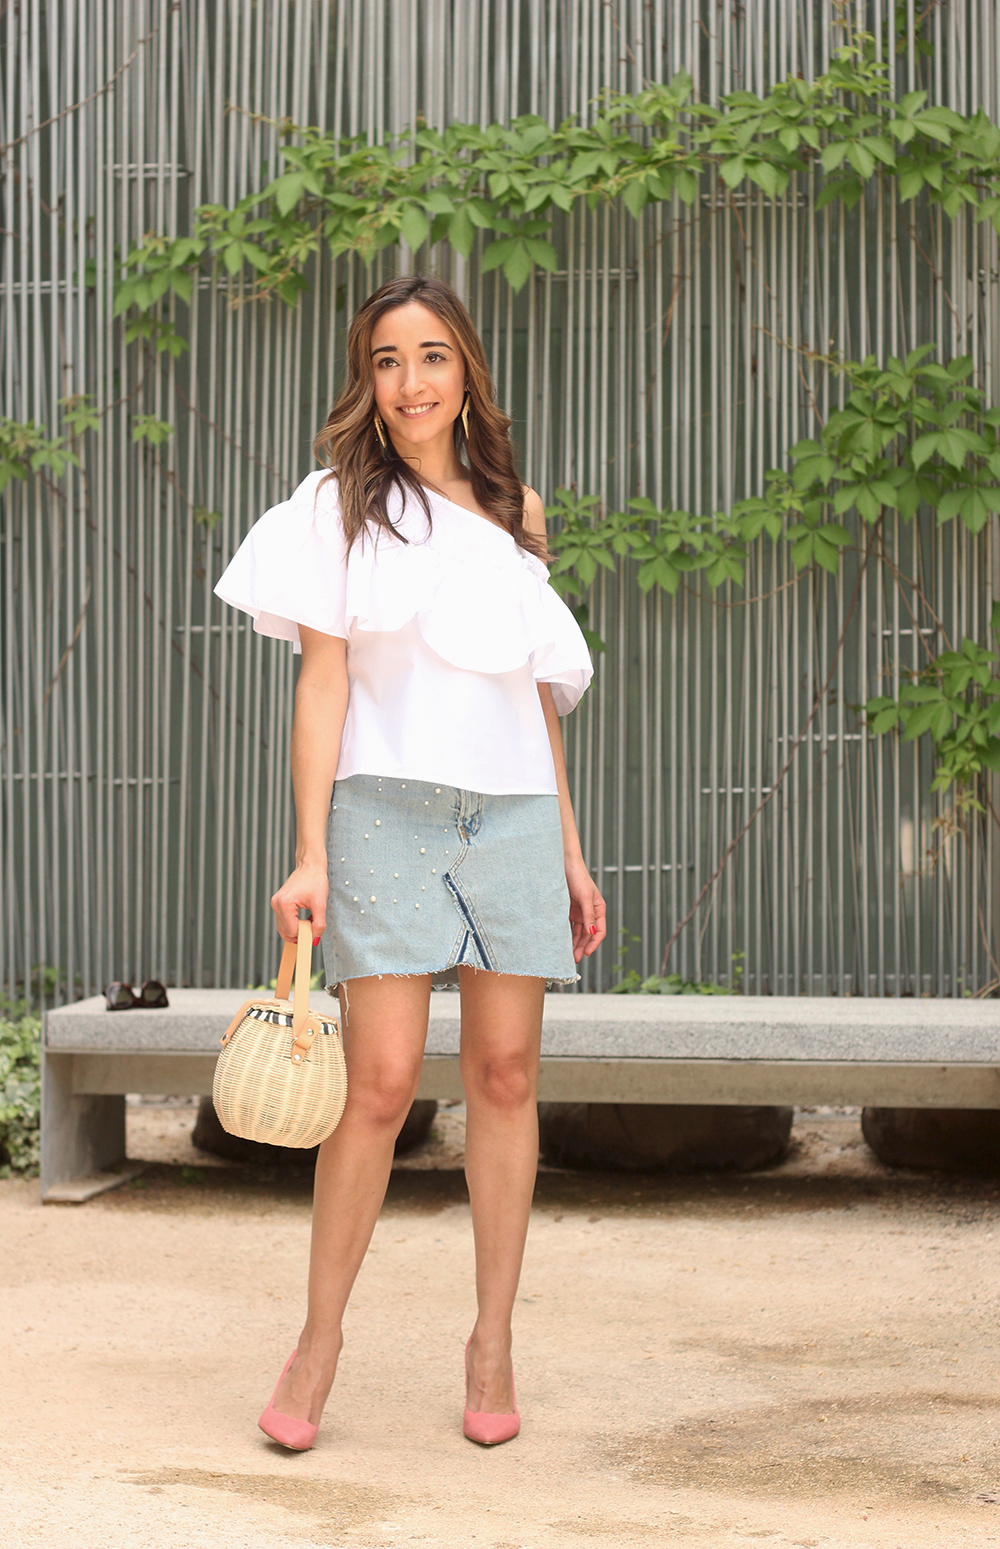 denim skirt with pearls heels wicker bagwhite top summer style fashion outfit06